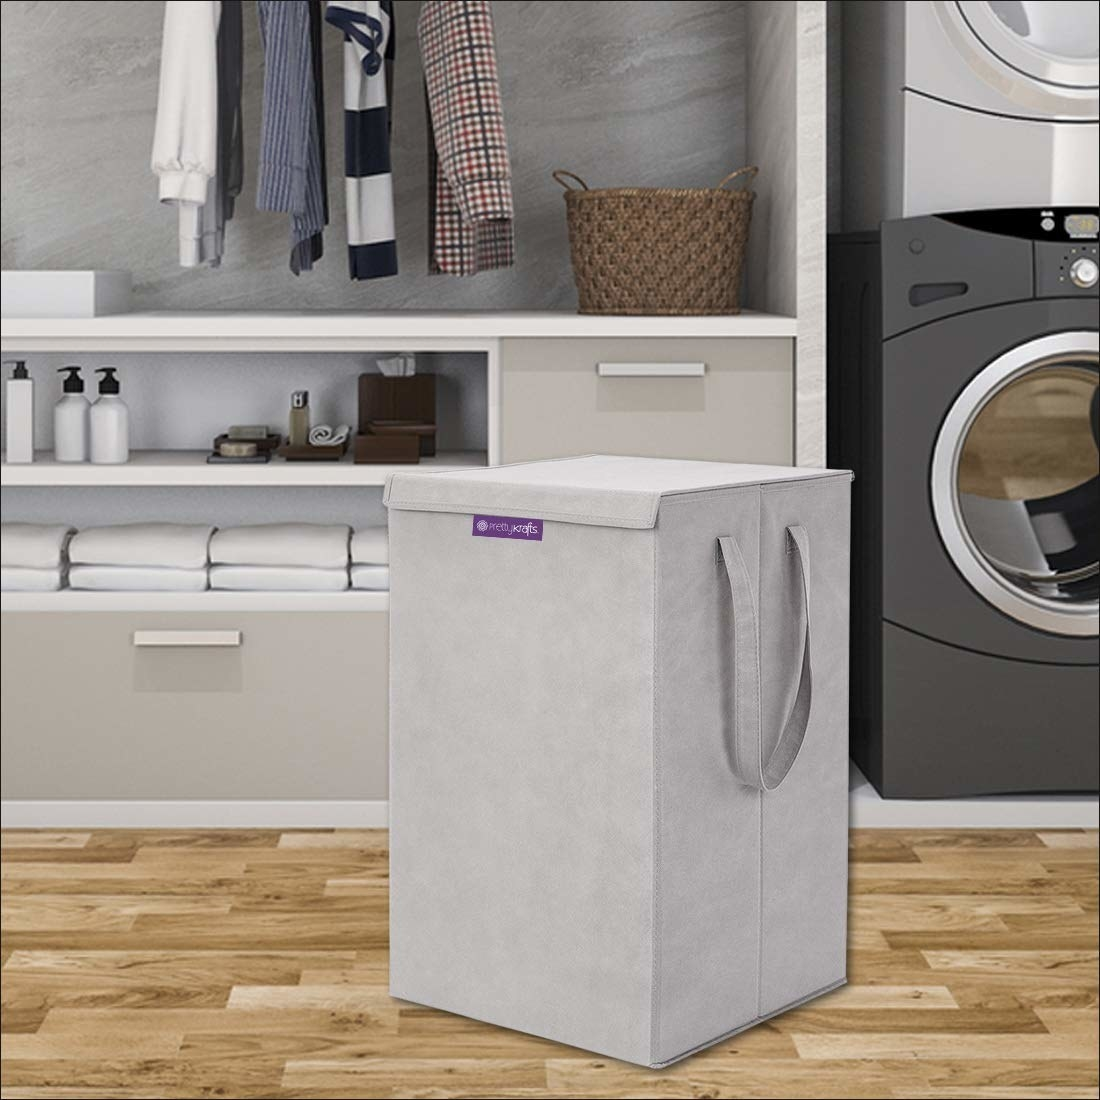 A grey laundry basket on the floor